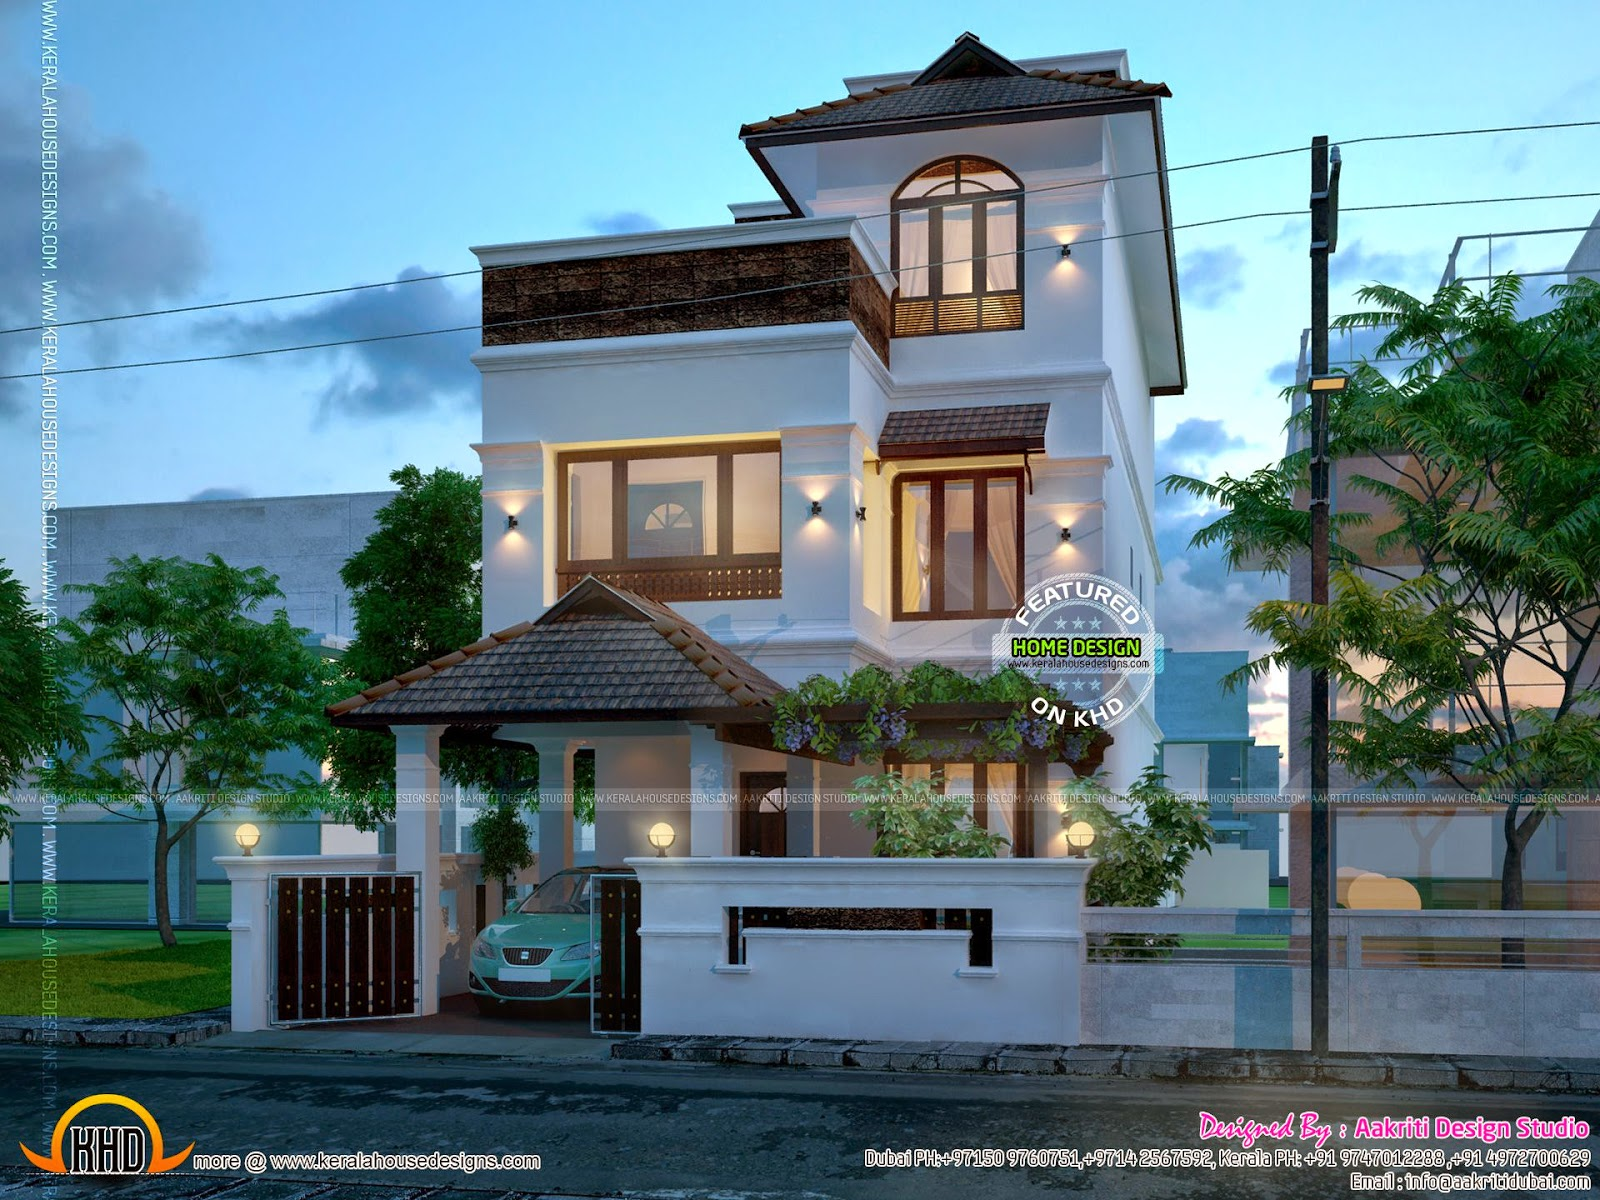 New house design kerala home design and floor plans for Latest modern home designs